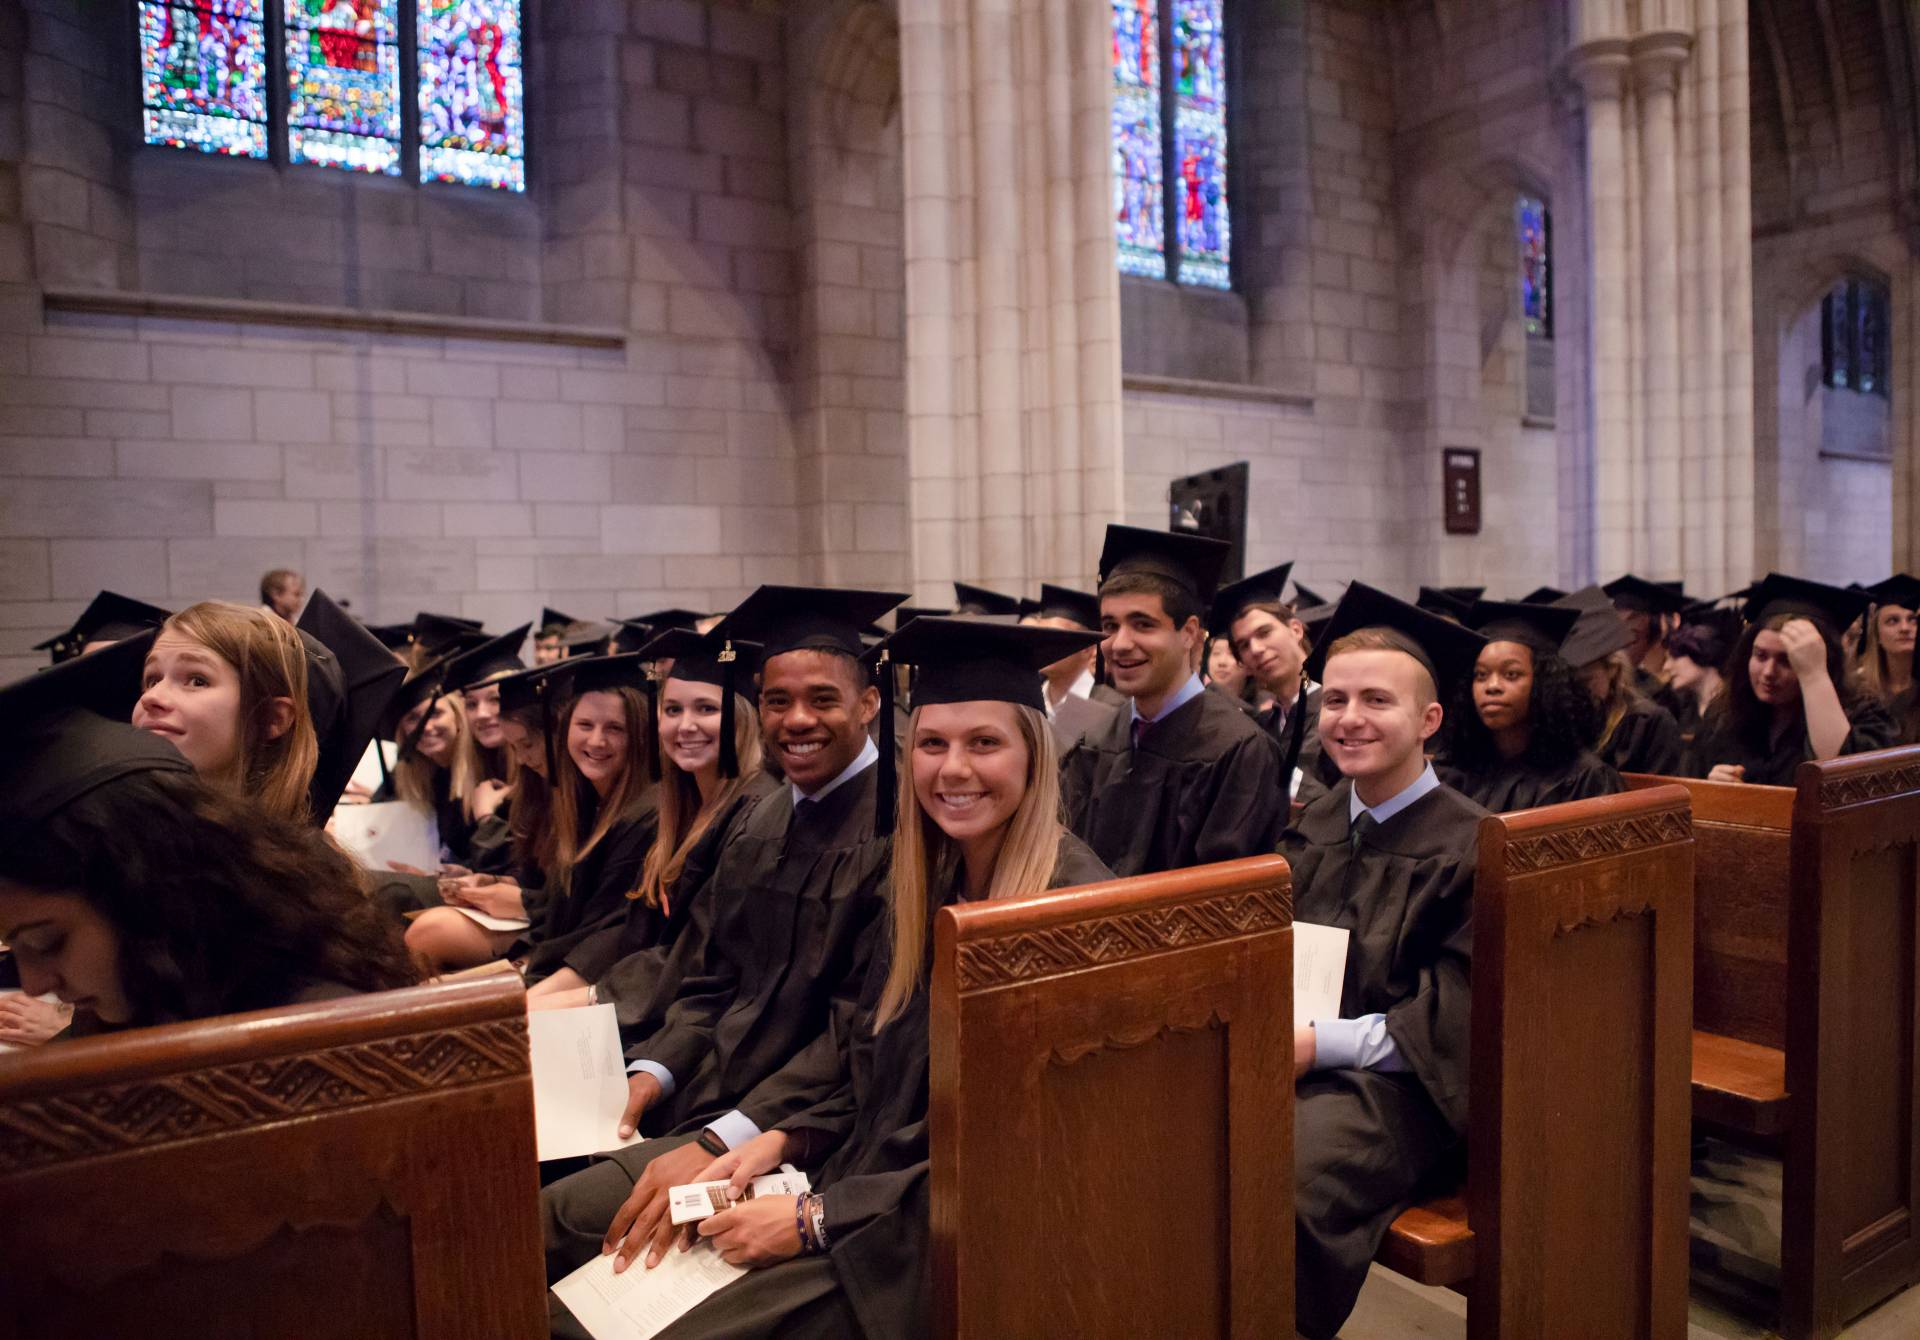 Students in chapel during Baccalaureate ceremony